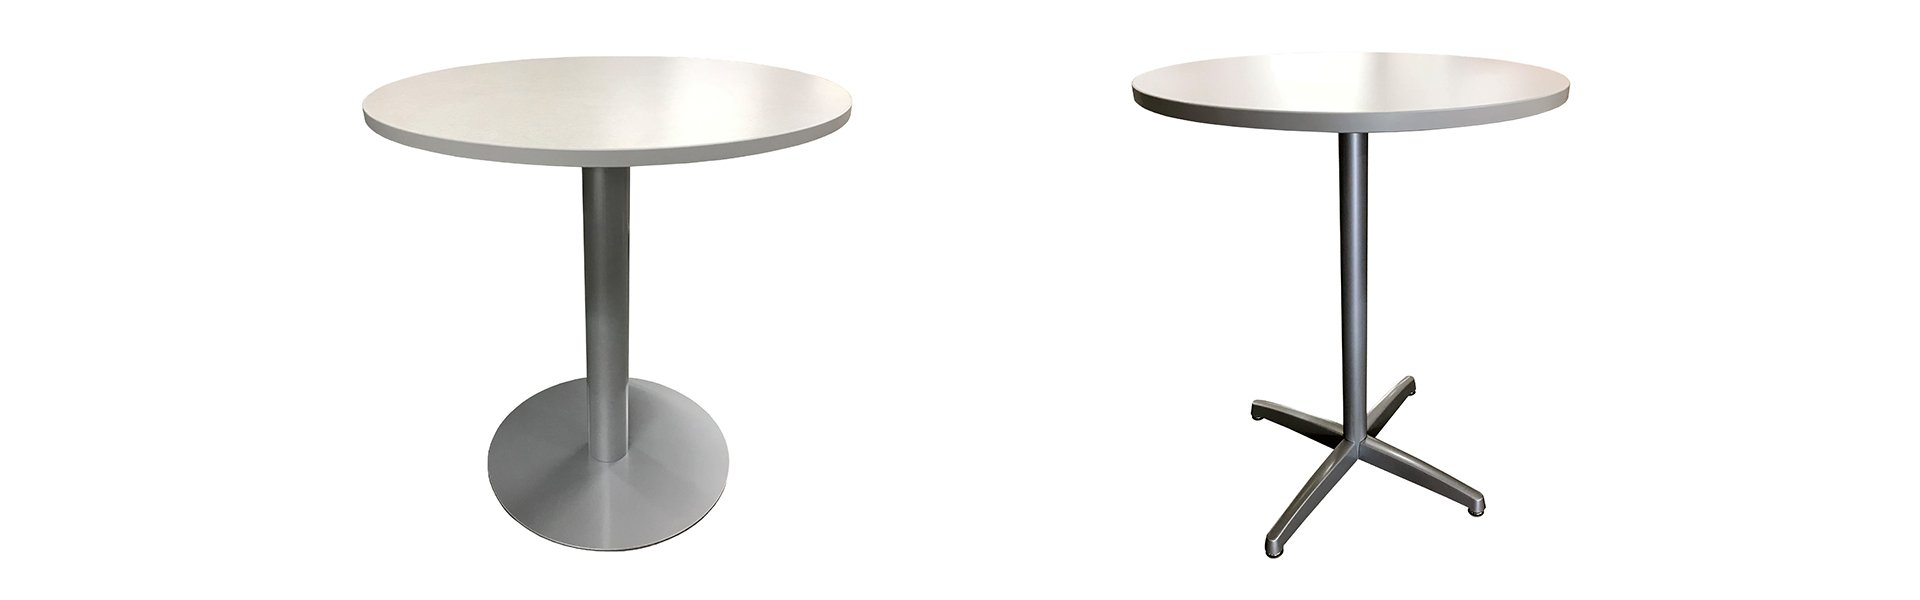 CFC Educational Pedestal Base Round Tables